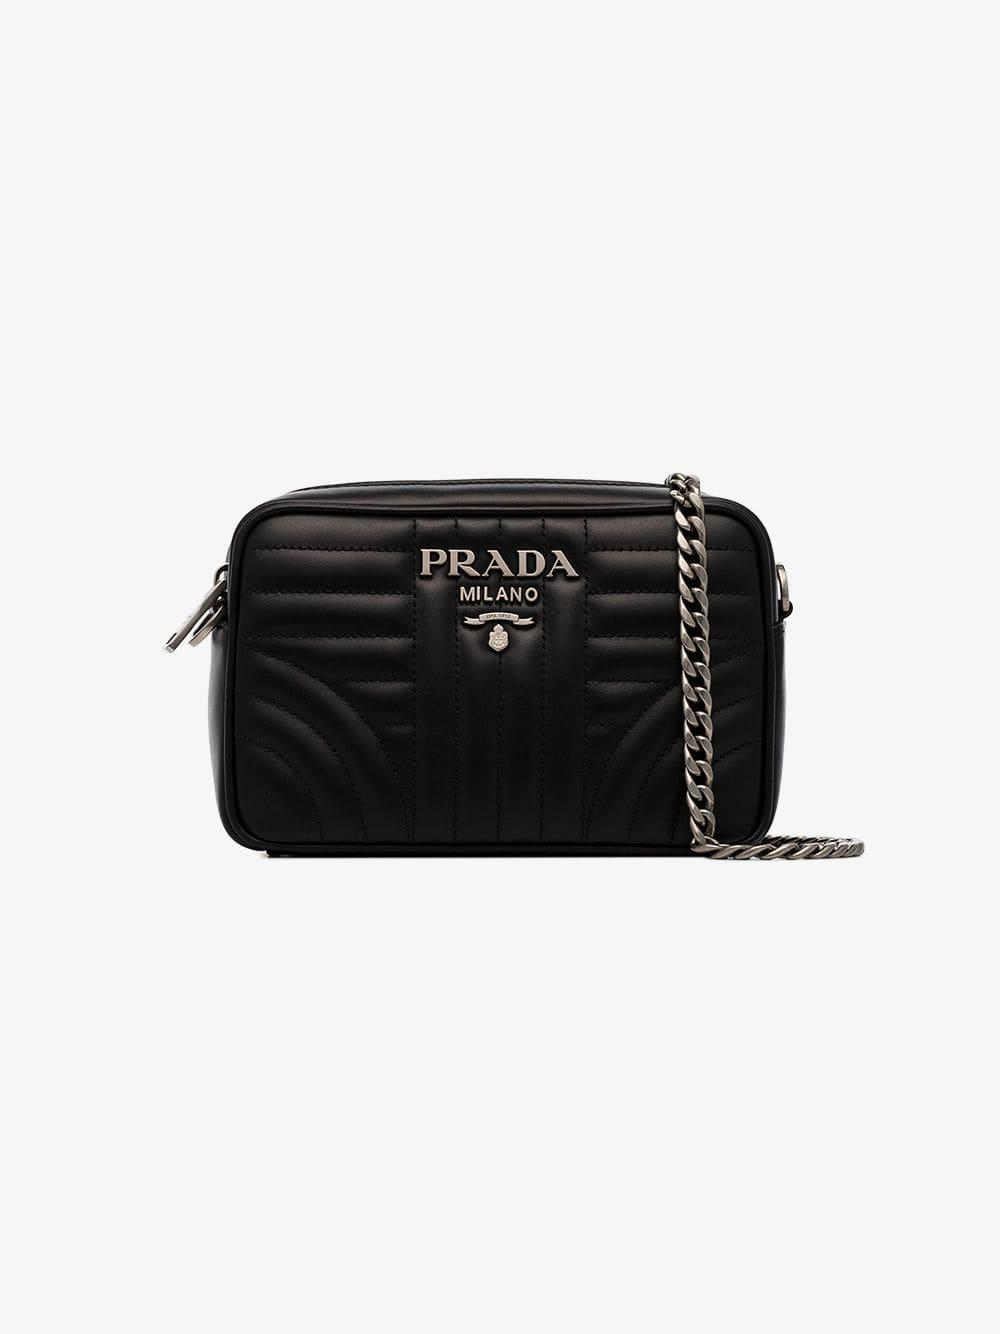 1f1a32b115d7be Lyst - Prada Black Diagram Small Quilted Leather Cross Body Bag in Black